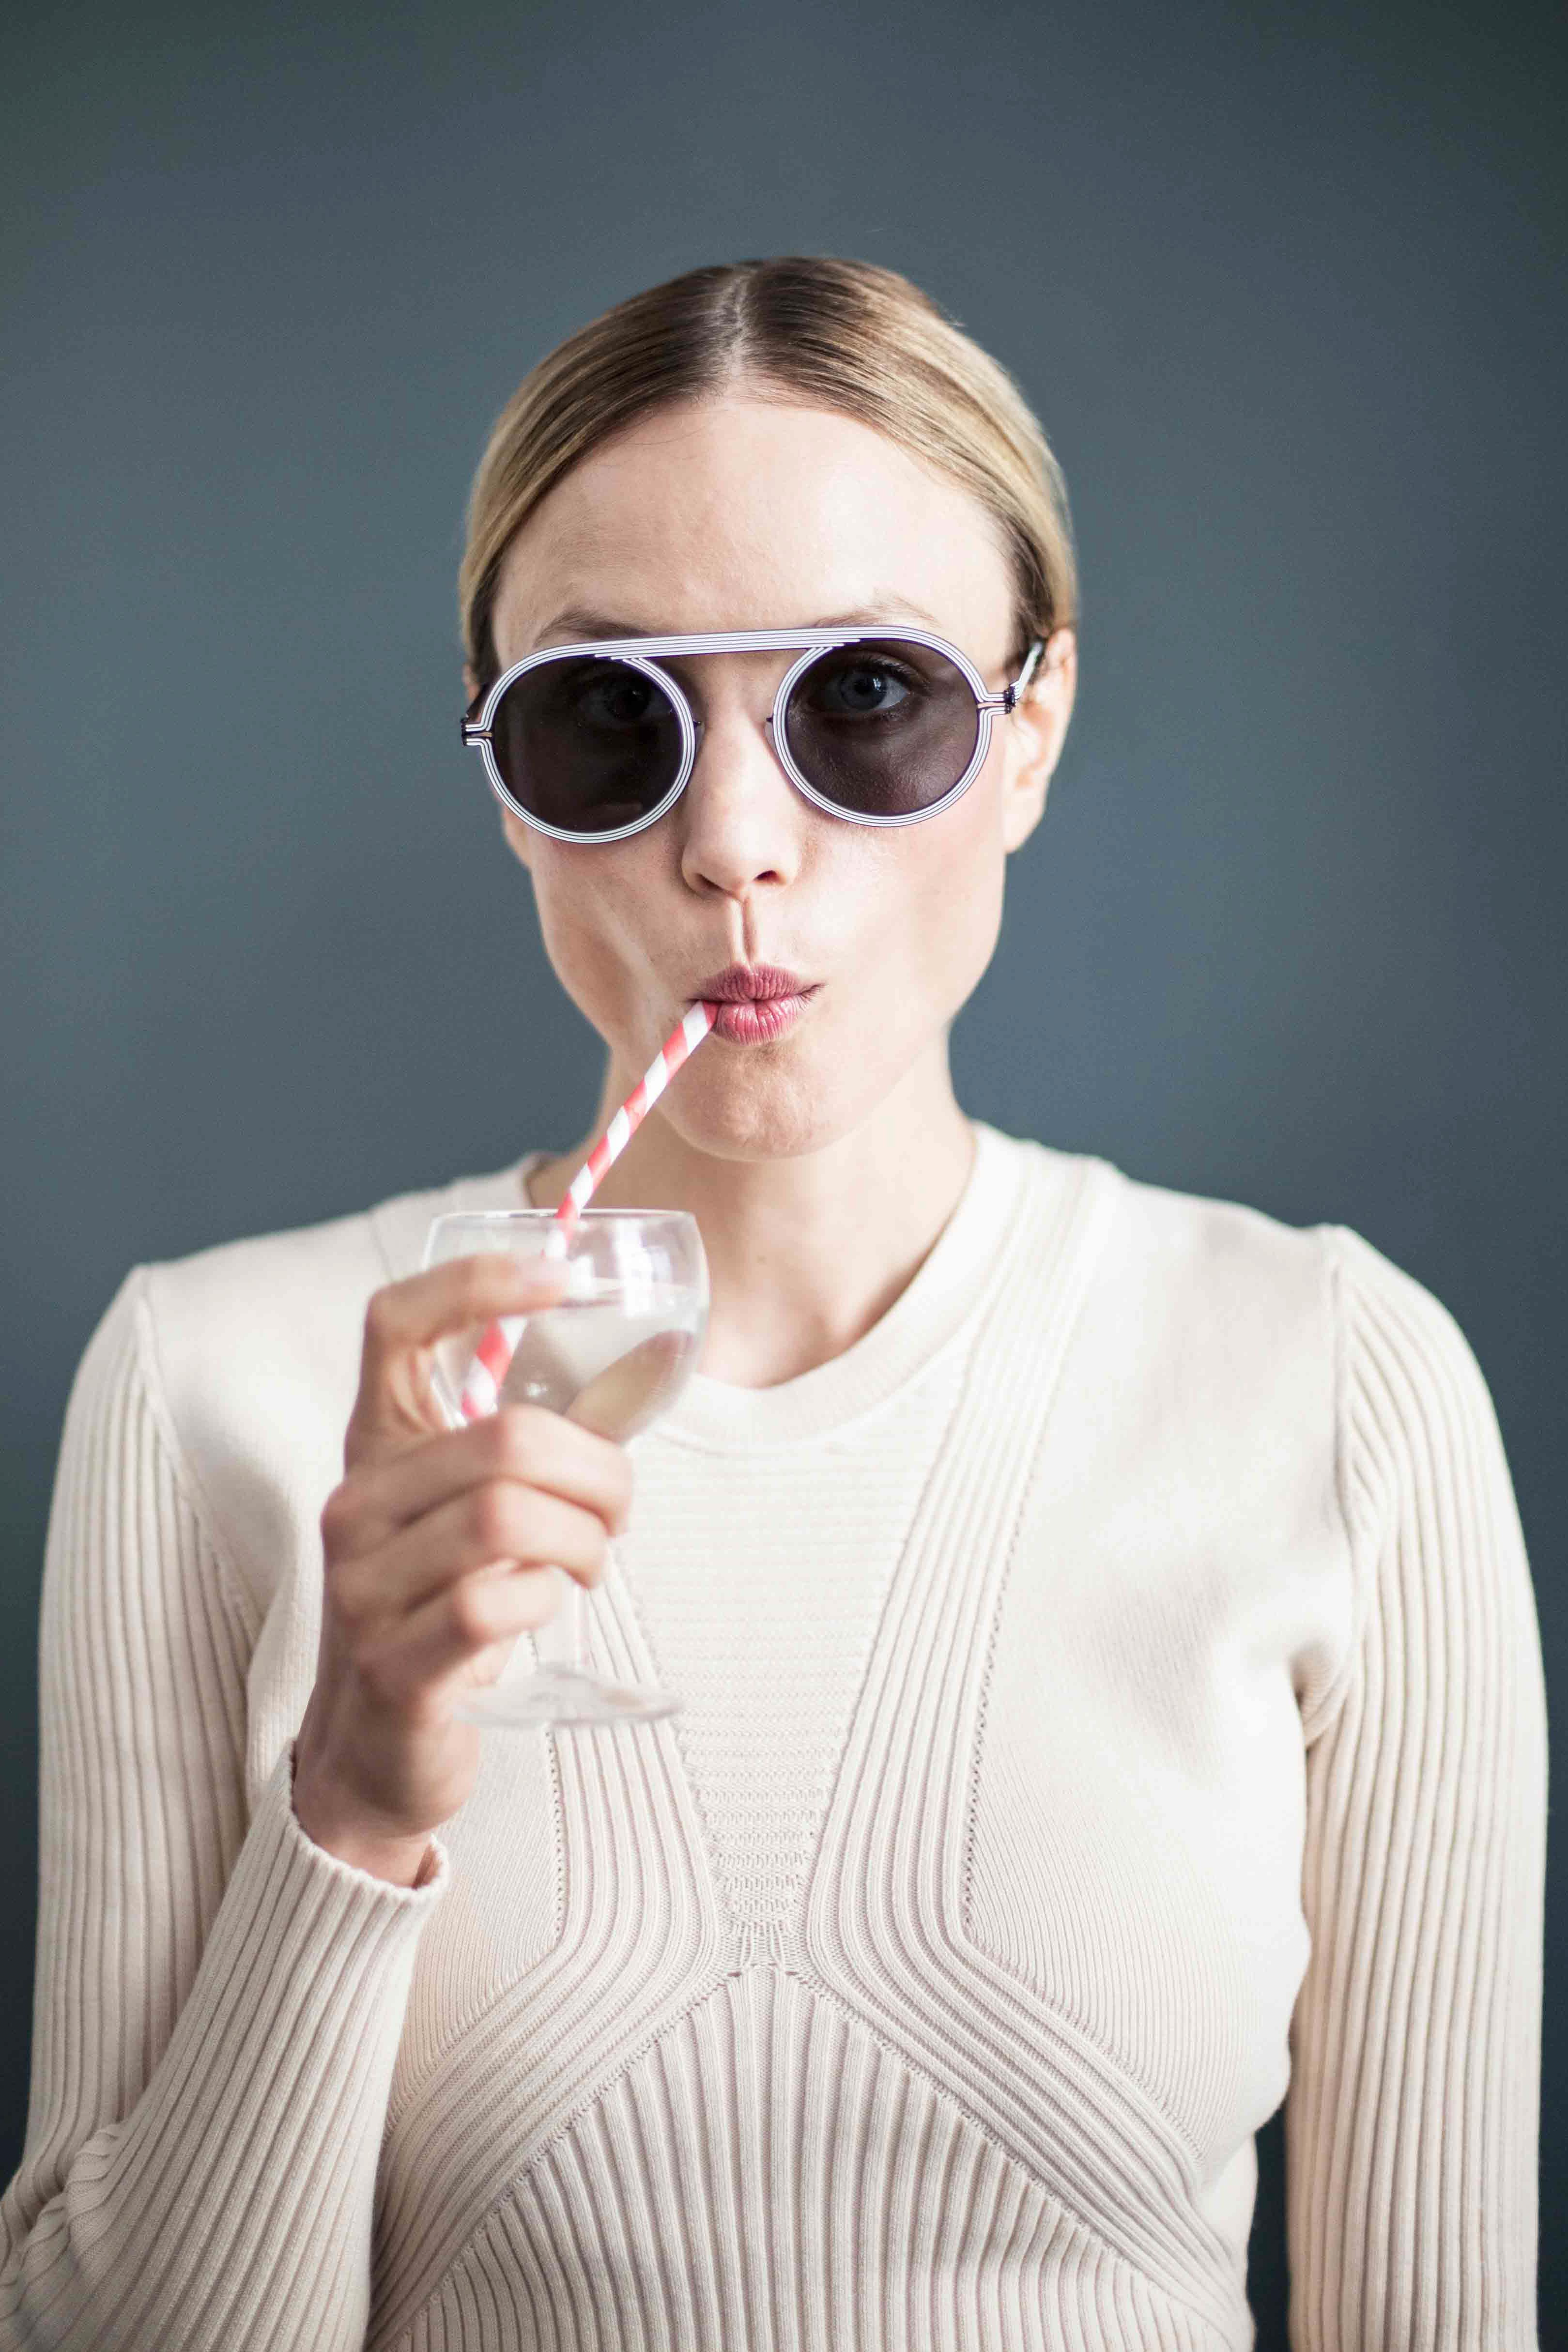 Woman drinking water with straw.